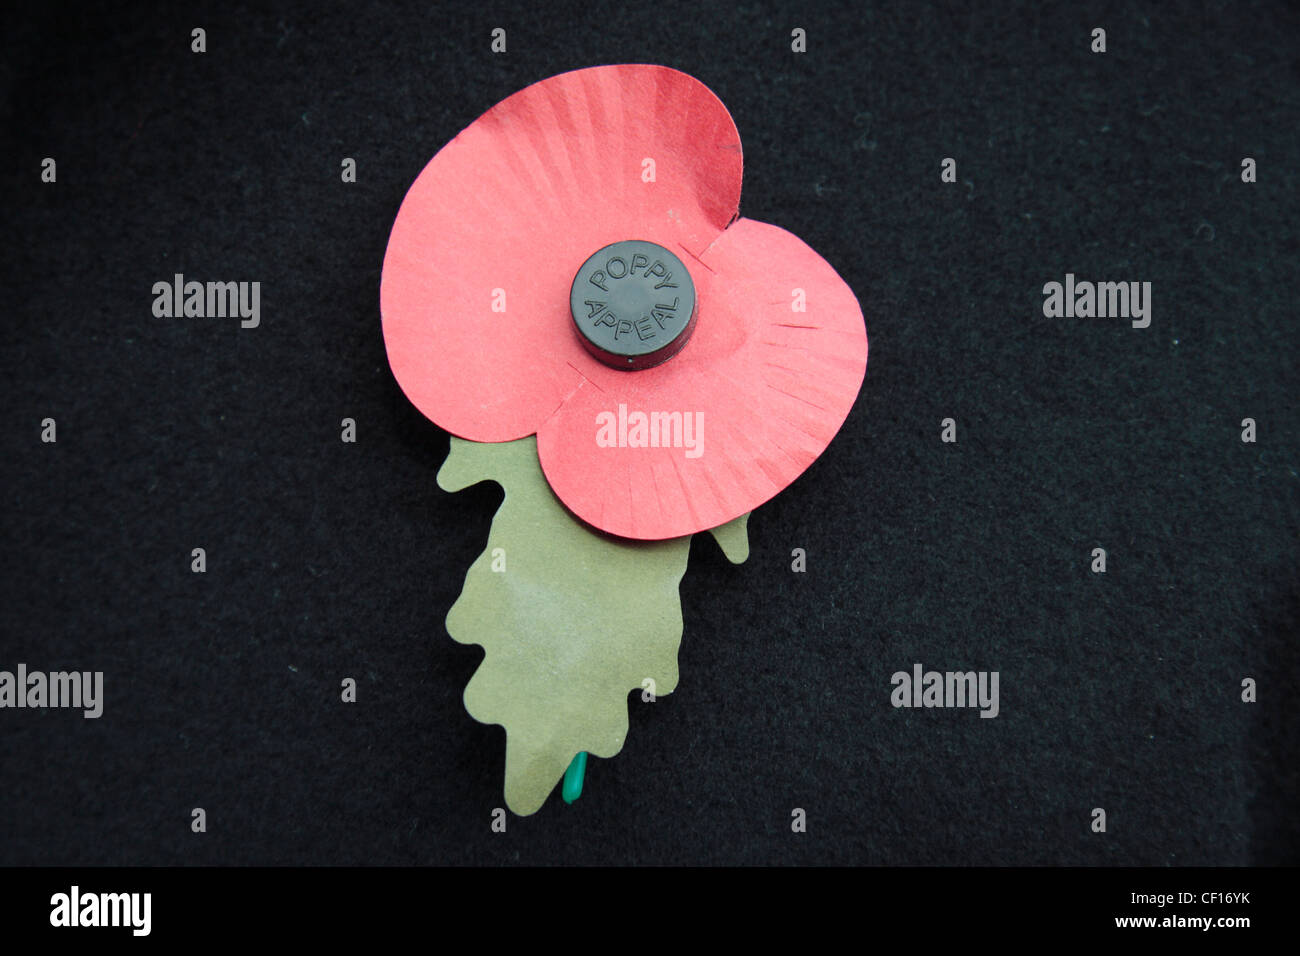 An English artificial Royal British Legion Red Poppy on a dark jacket background.  This shows the green leaf pointing - Stock Image